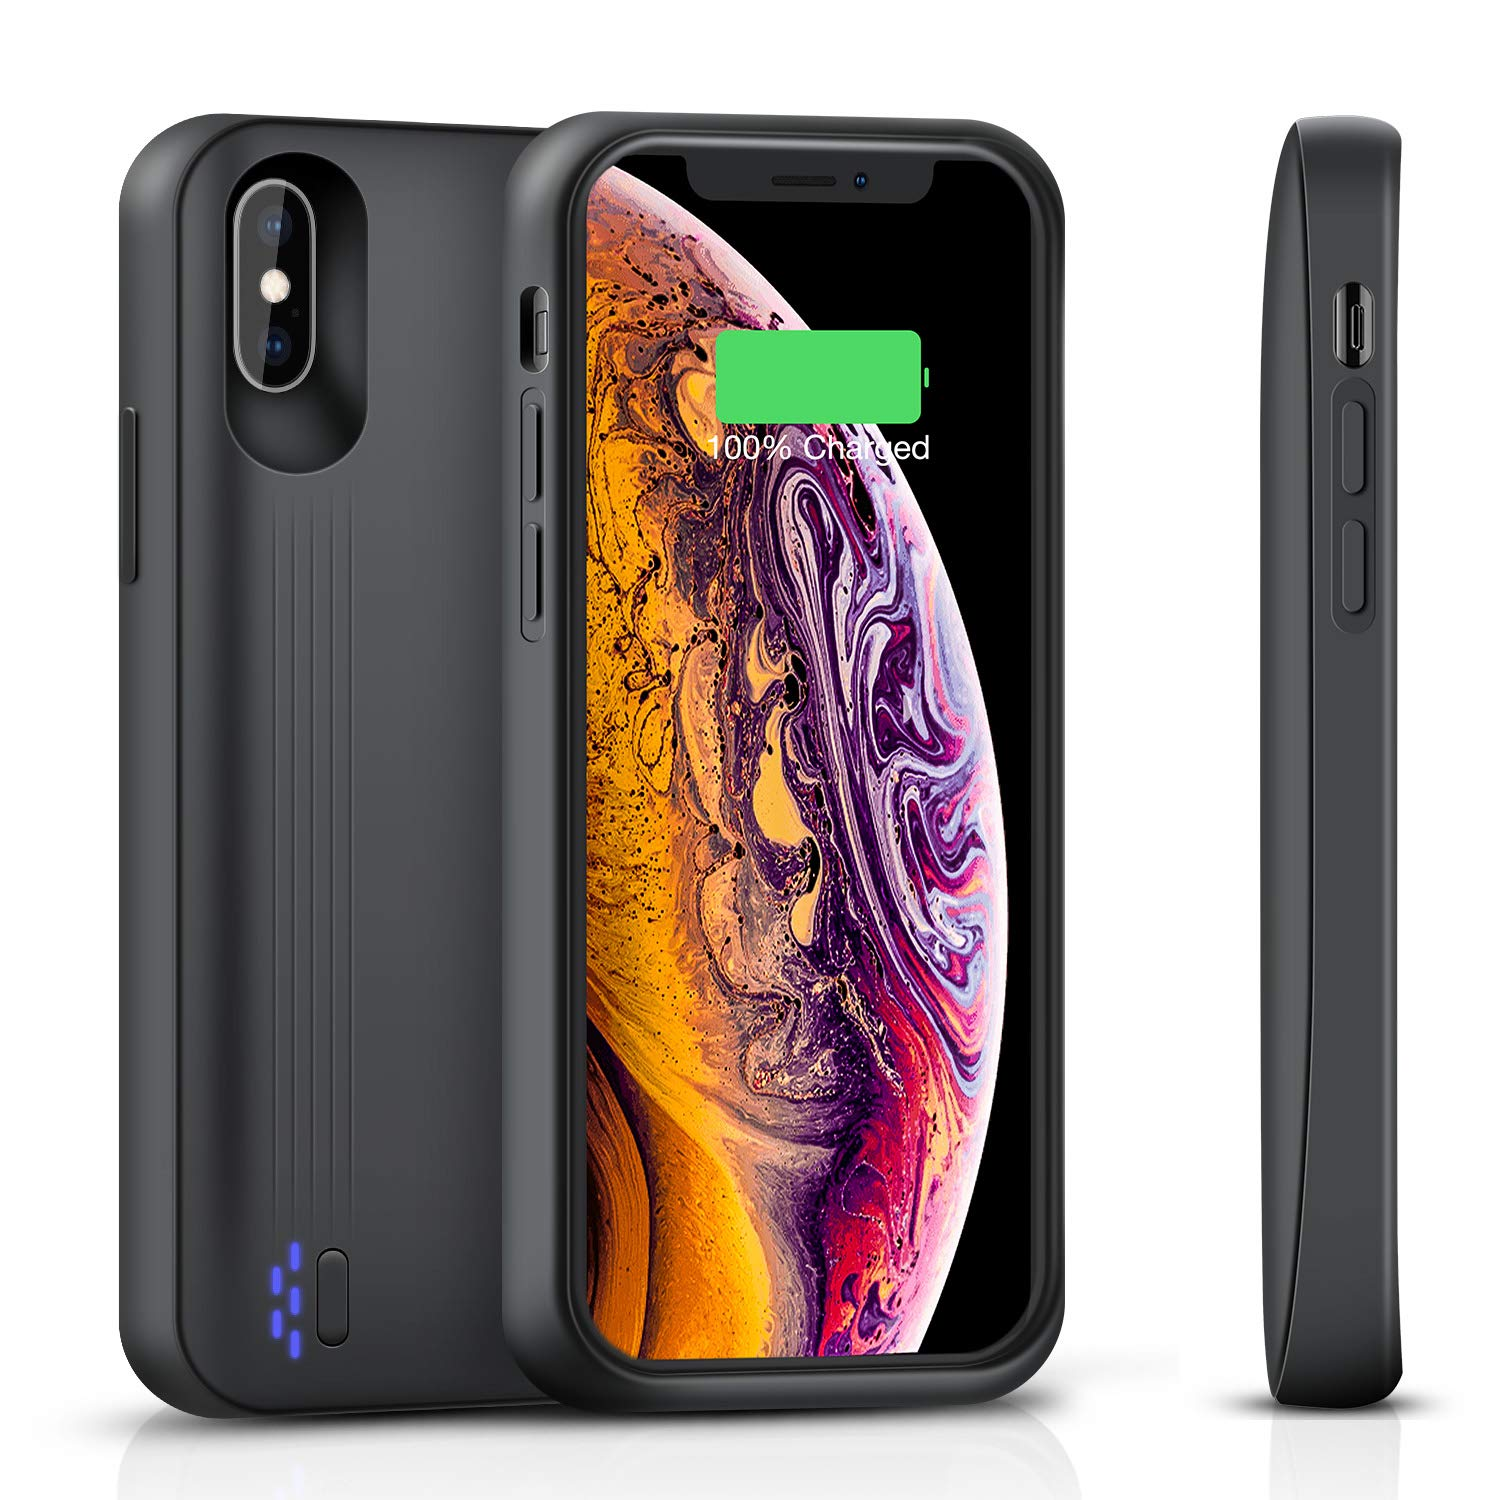 Snowpink iPhone X/XS Battery Case Support Headphones, 3900mAh Slim Portable Charger Case Rechargeable Extended Battery Pack Protective Charging Case Compatible iPhone X/XS(5.8 Inch)- Black